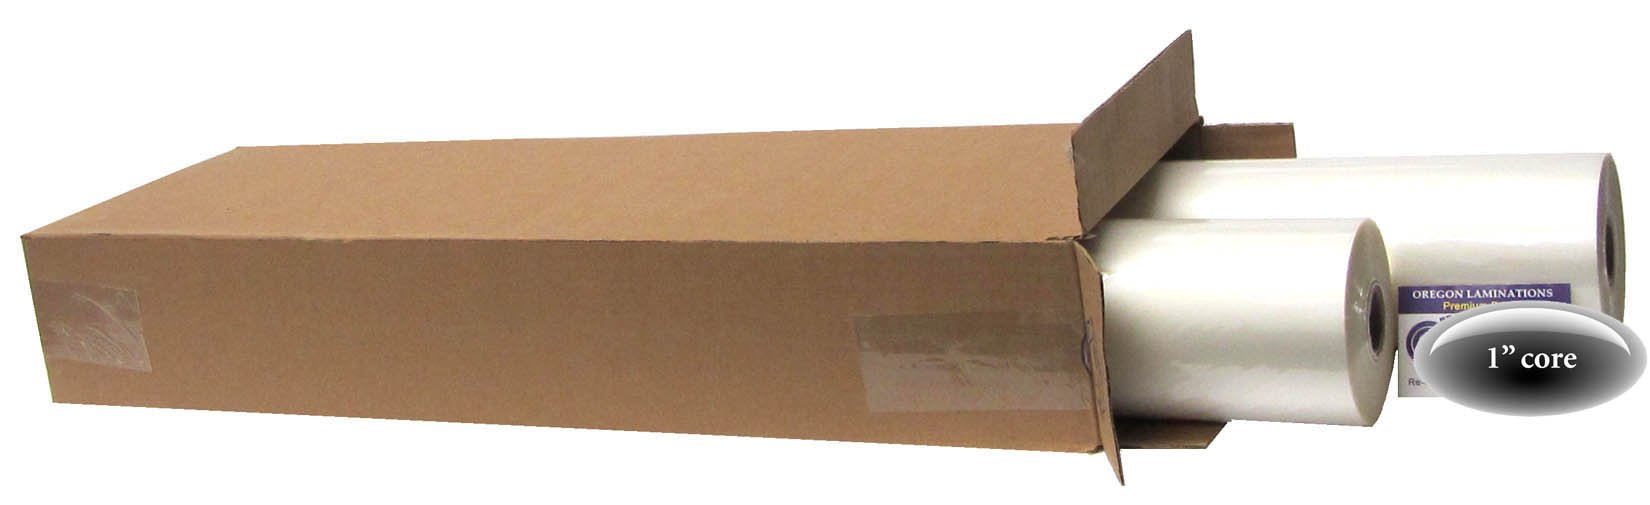 USI WrapSure Standard Thermal Roll Laminating Film, 1 Inch Core, 3 Mil, 27 Inches x 250 Feet, Clear Gloss, 2 Rolls by USI